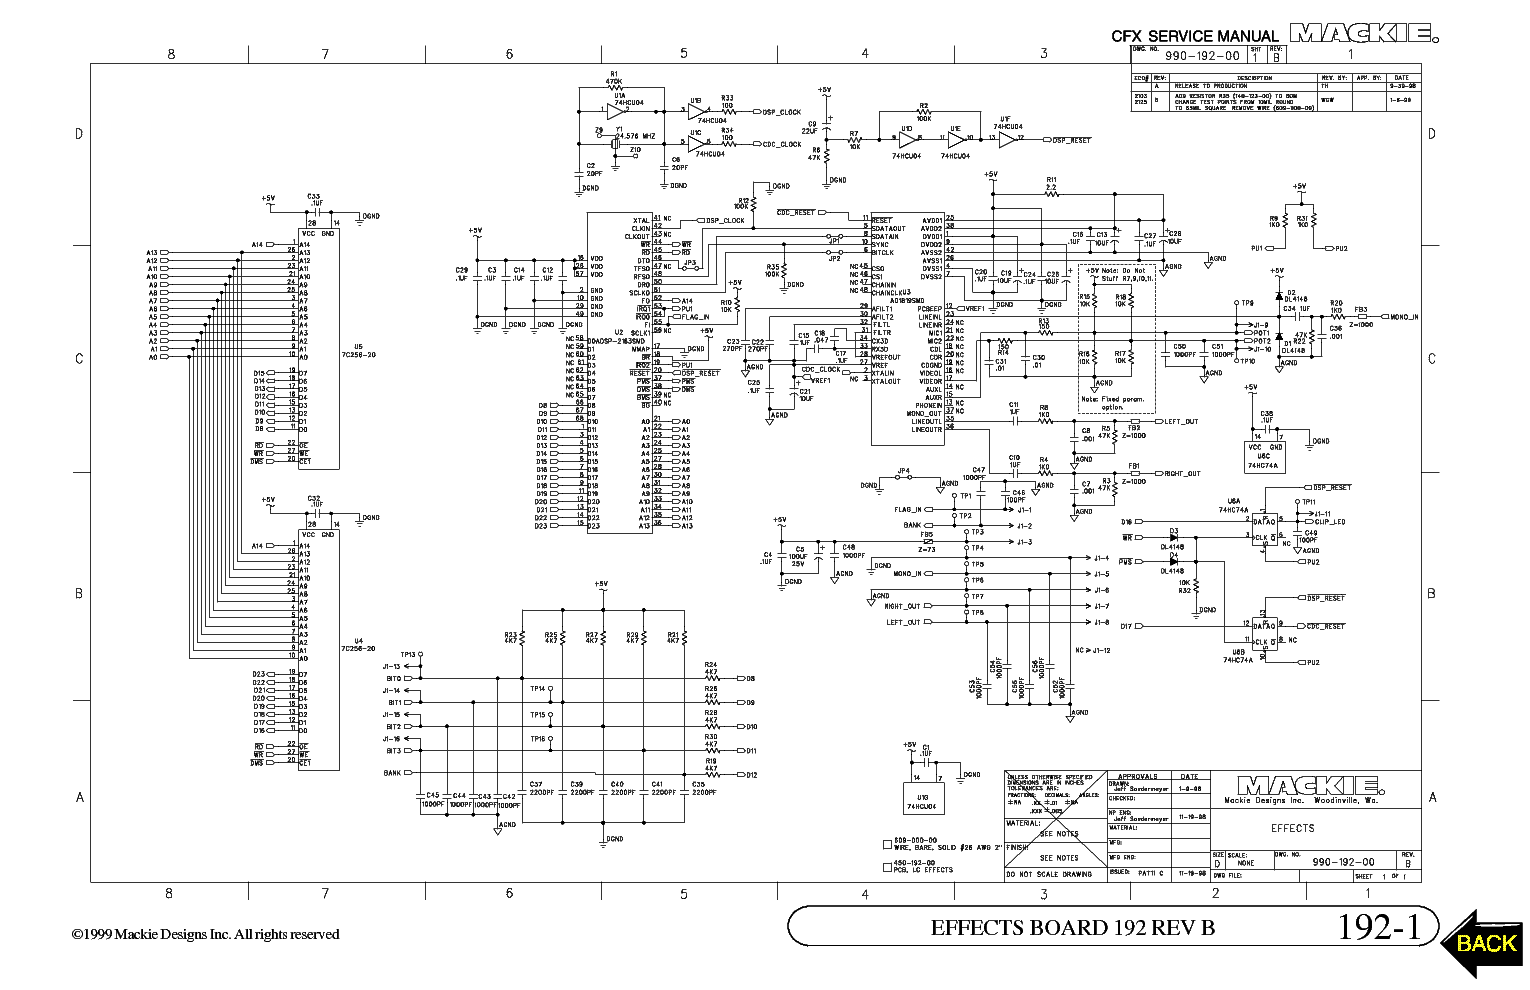 Mackie wiring diagrams